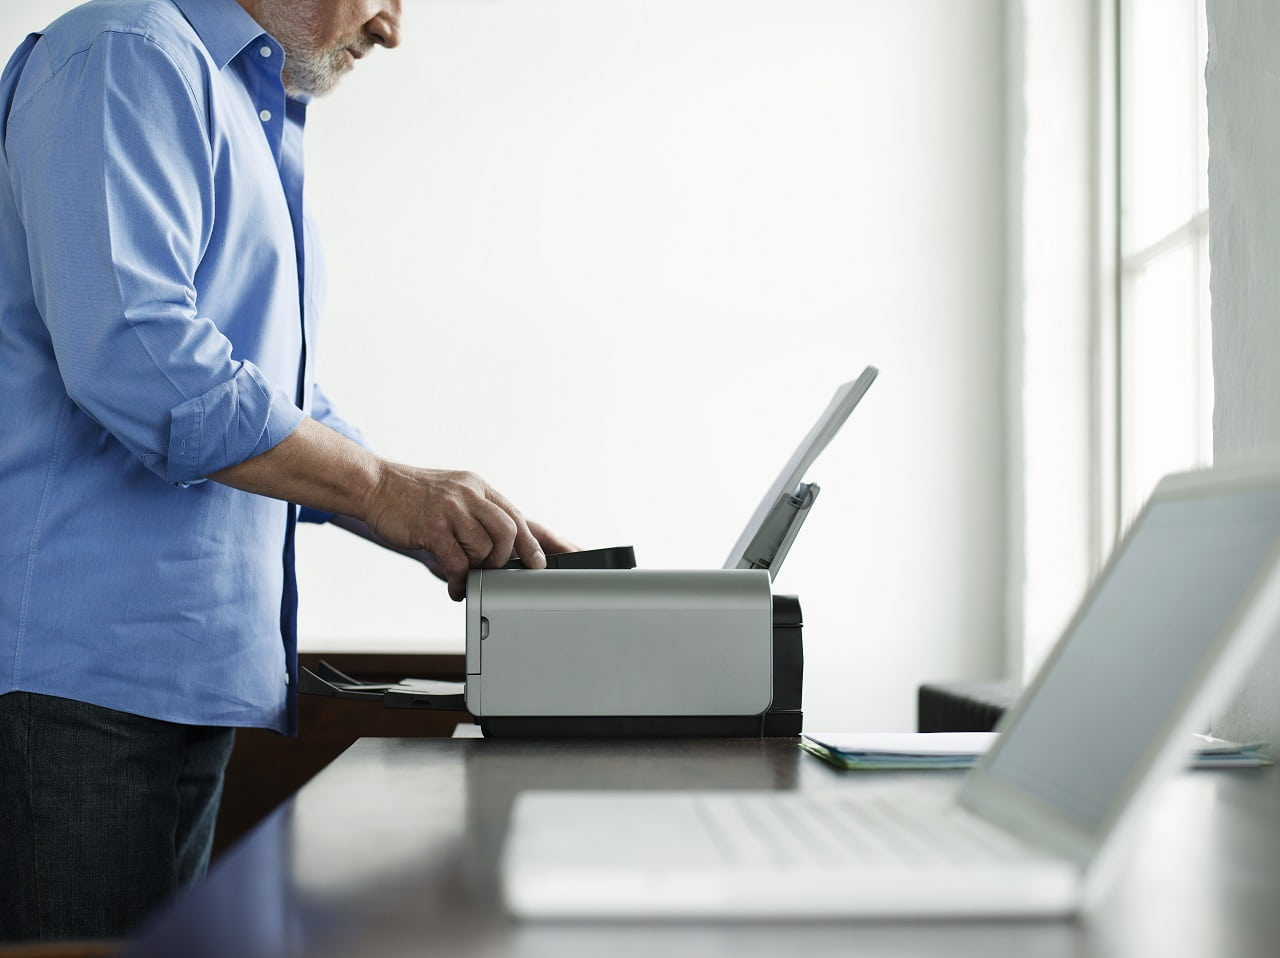 Install Hp Printer Without CD - How to Install HP Printer without CD